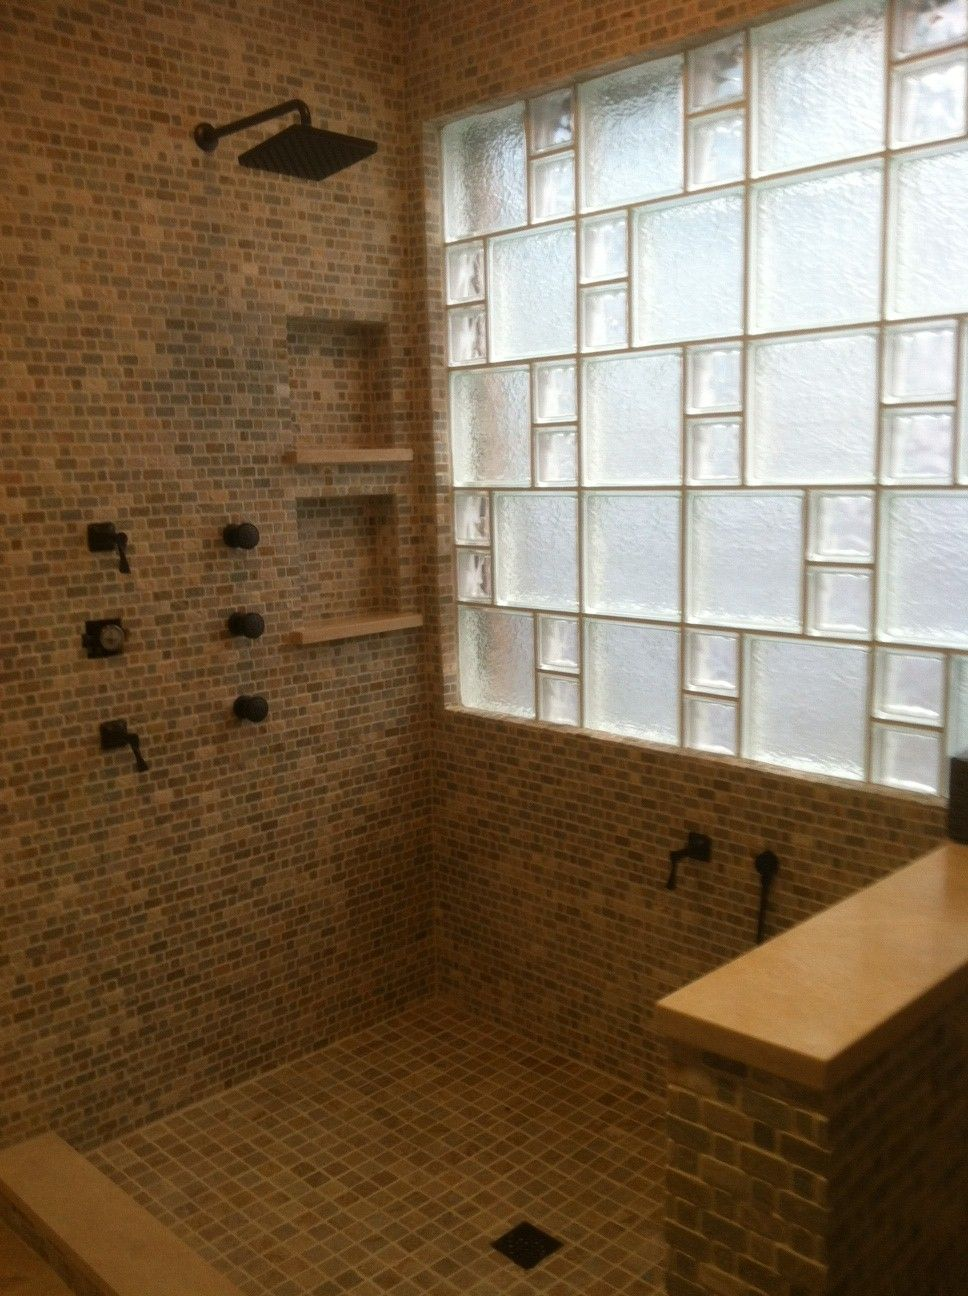 Glass block walls in bathrooms - Nothing Brightens Up Your Bathroom Like Glass Block And When You Mix The Glass